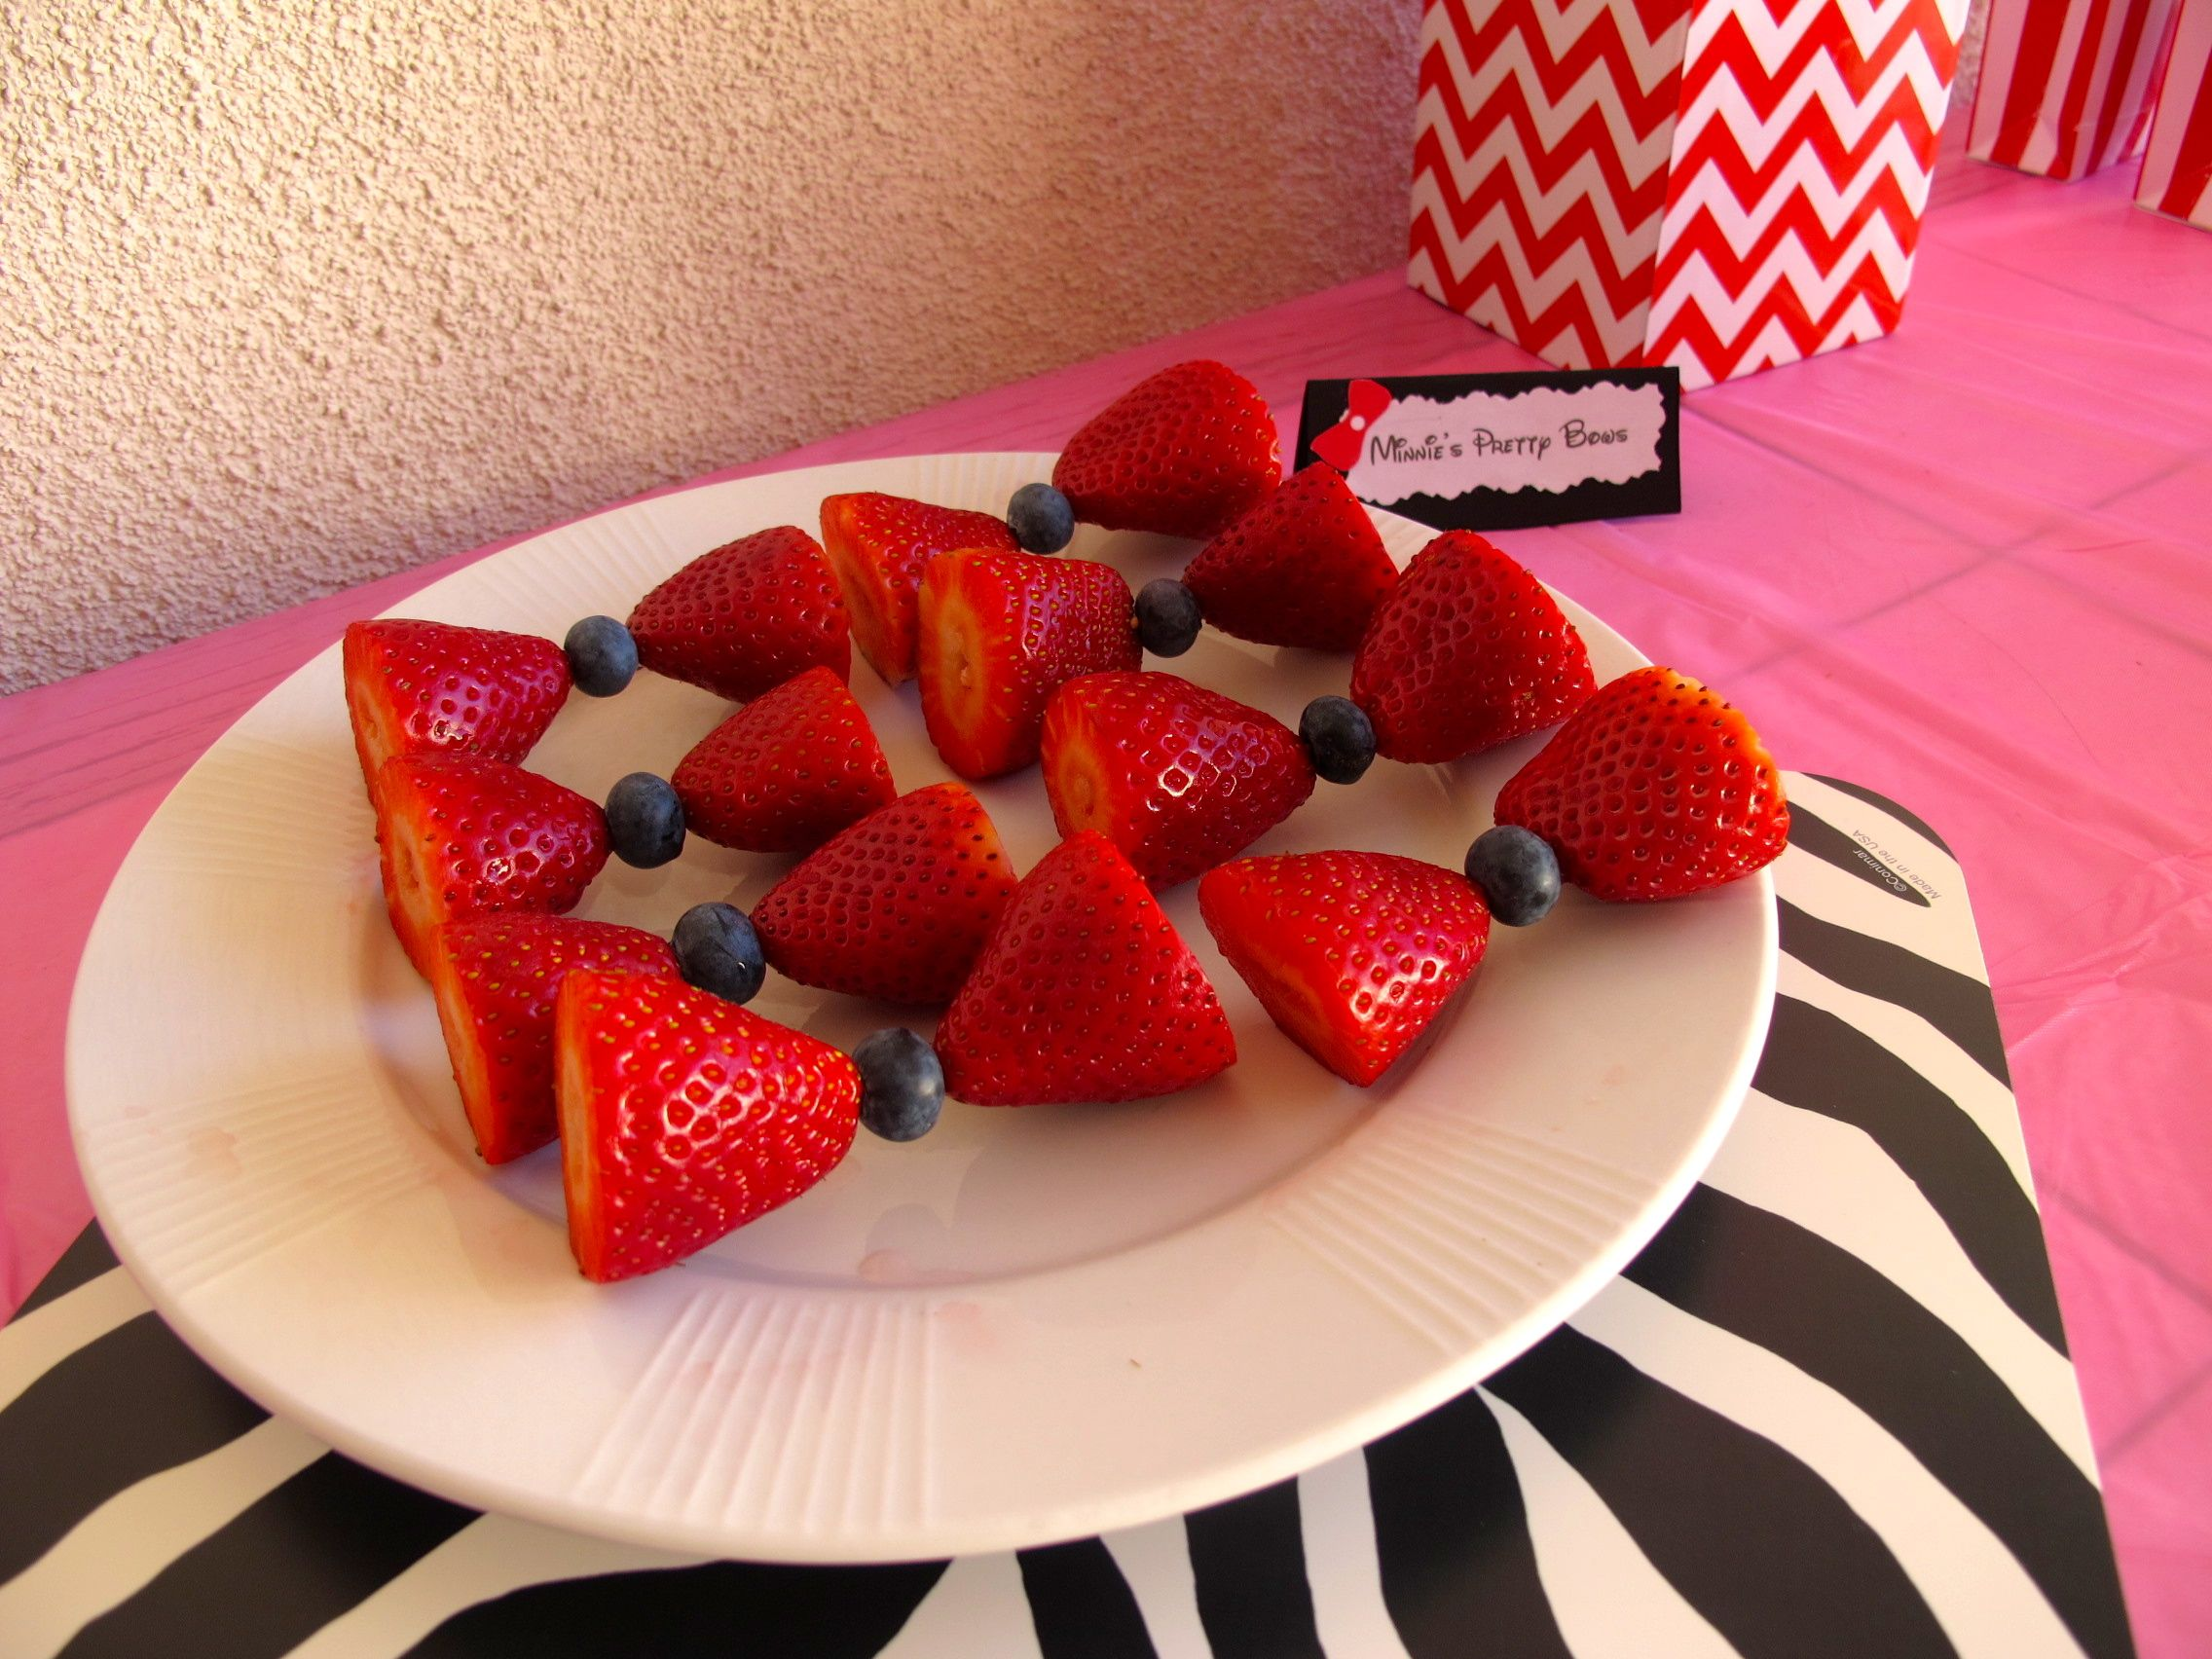 """Strawberries, blueberries and some toothpicks put these adorable """"bows"""". They were easy to put together and super cute!"""